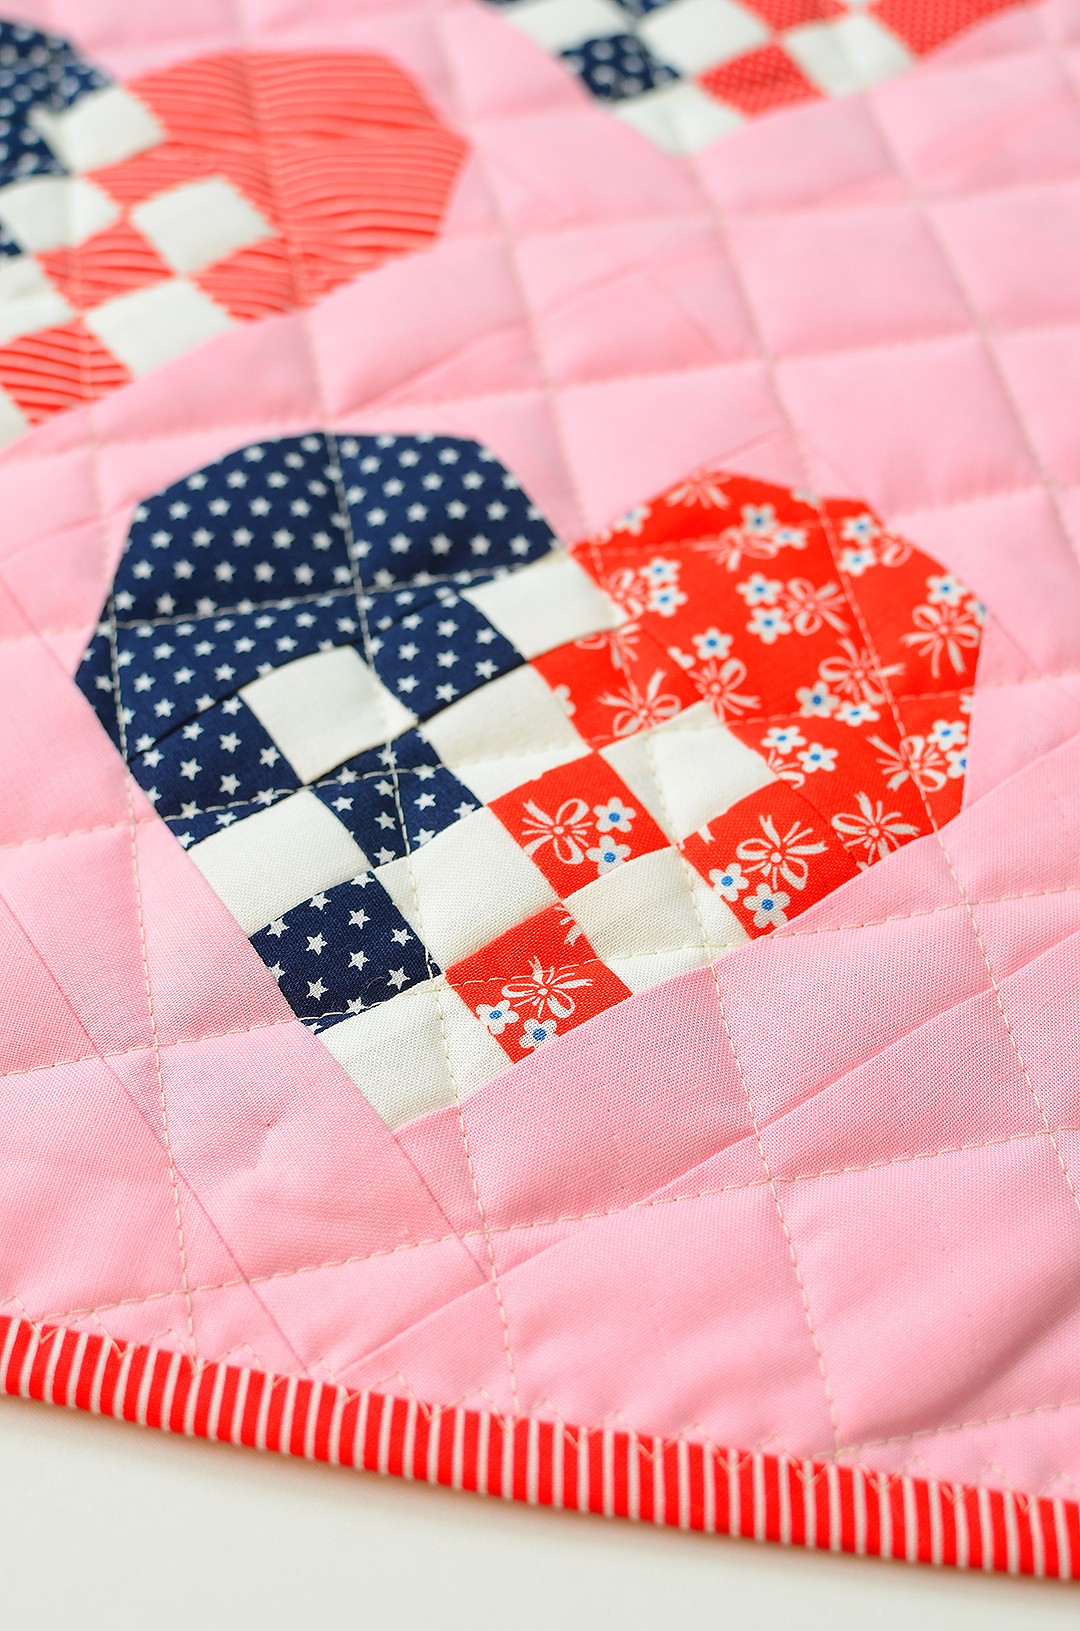 Patriotic quilt pattern with hearts in red, white and blue